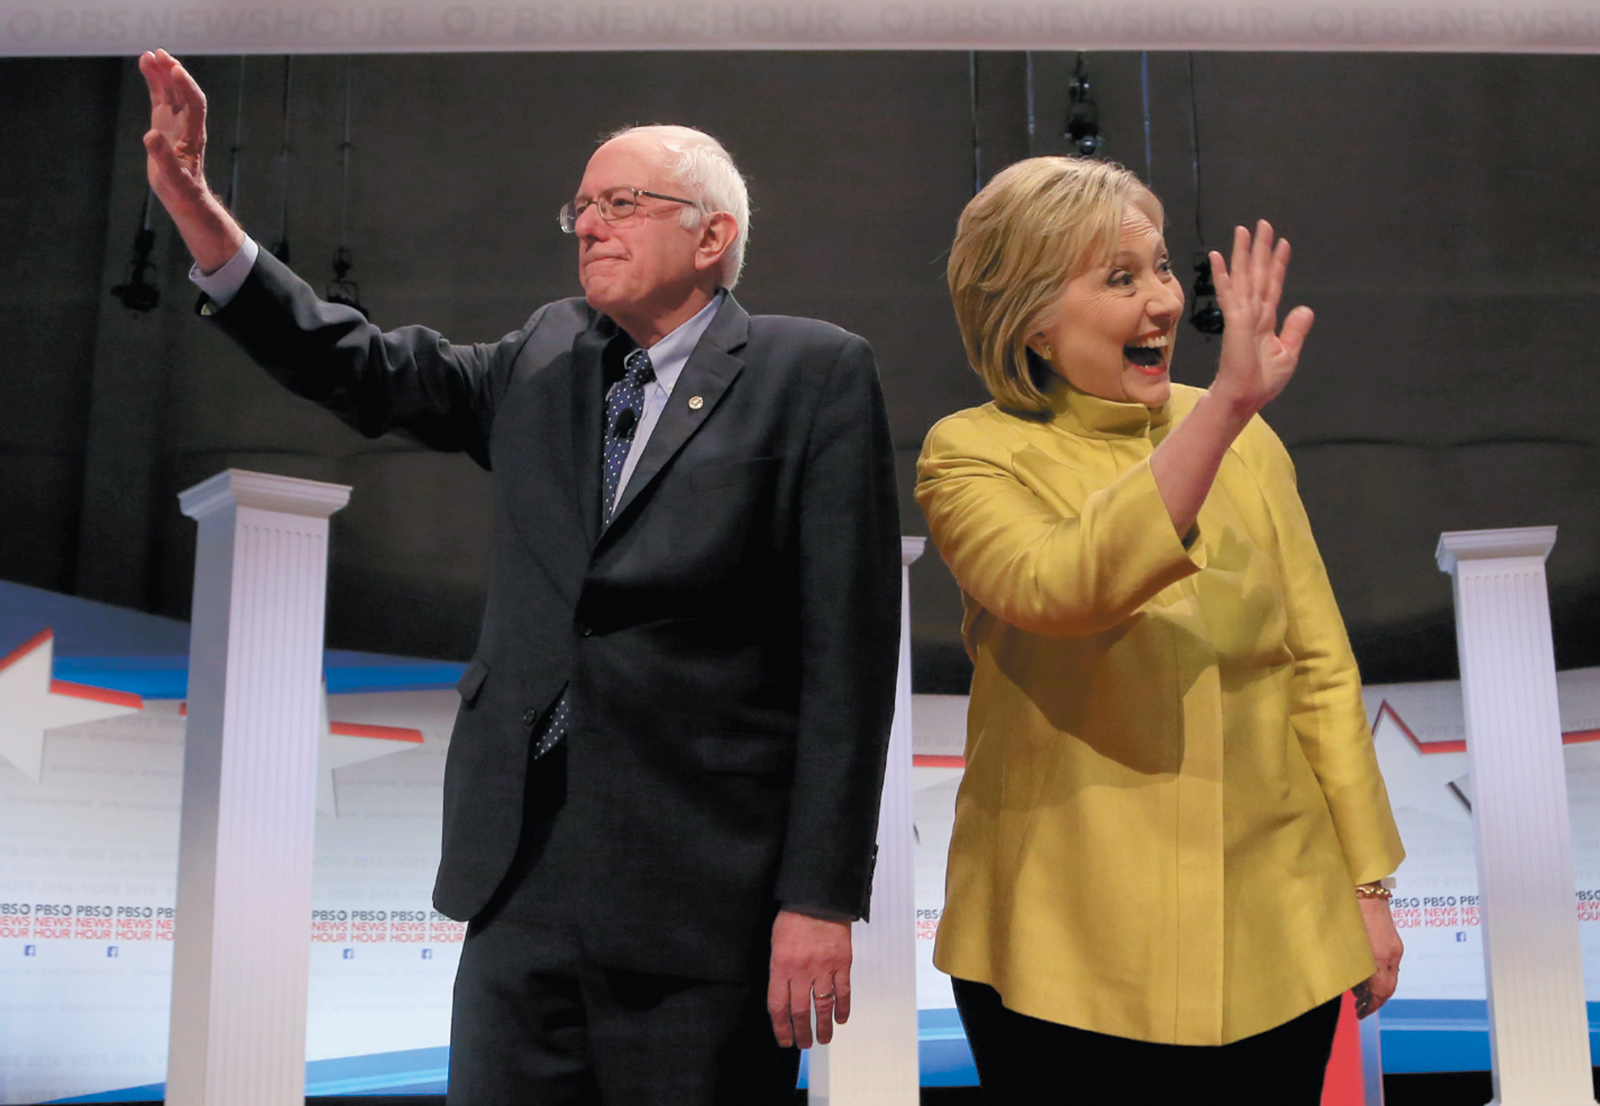 Bernie Sanders and Hillary Clinton at the Democratic presidential debate in Milwaukee, Wisconsin, February 2016